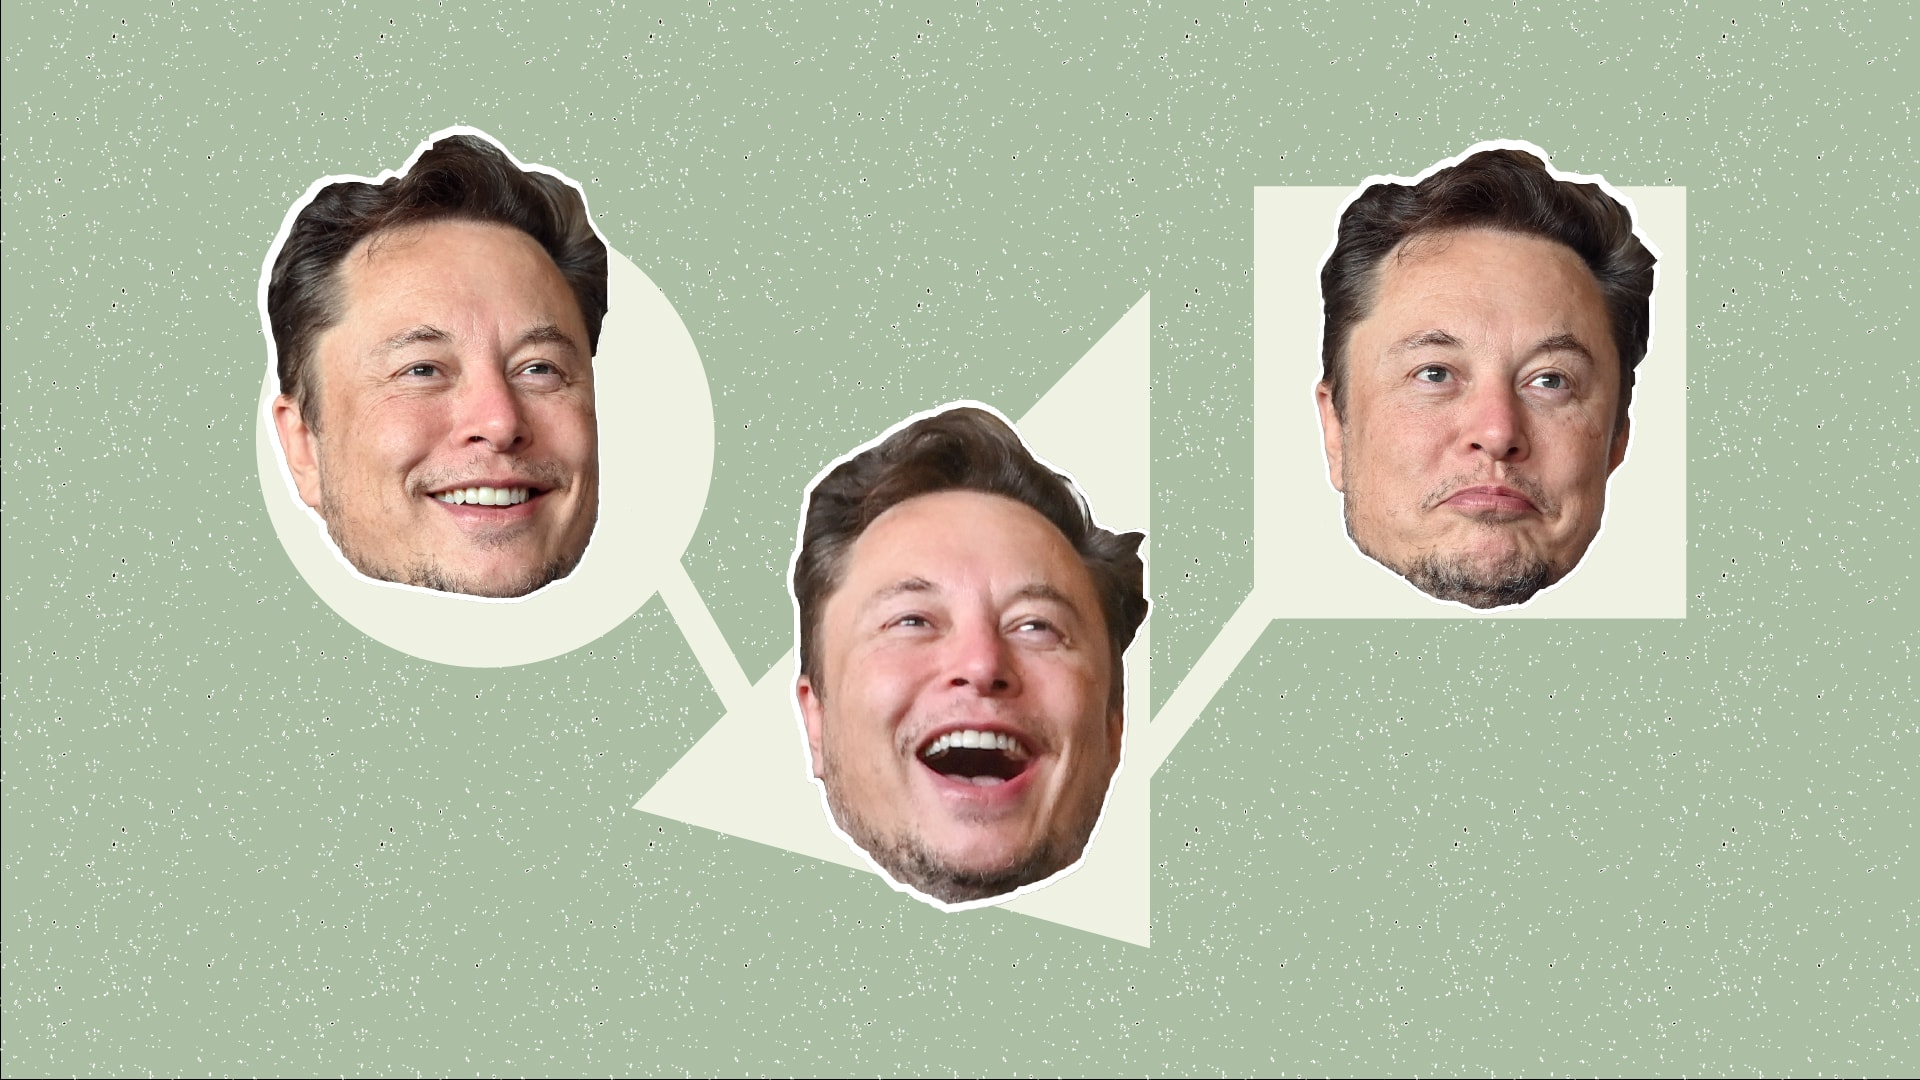 It Took Elon Musk a Few Words to Offer the Best Leadership Advice You Will Hear Today